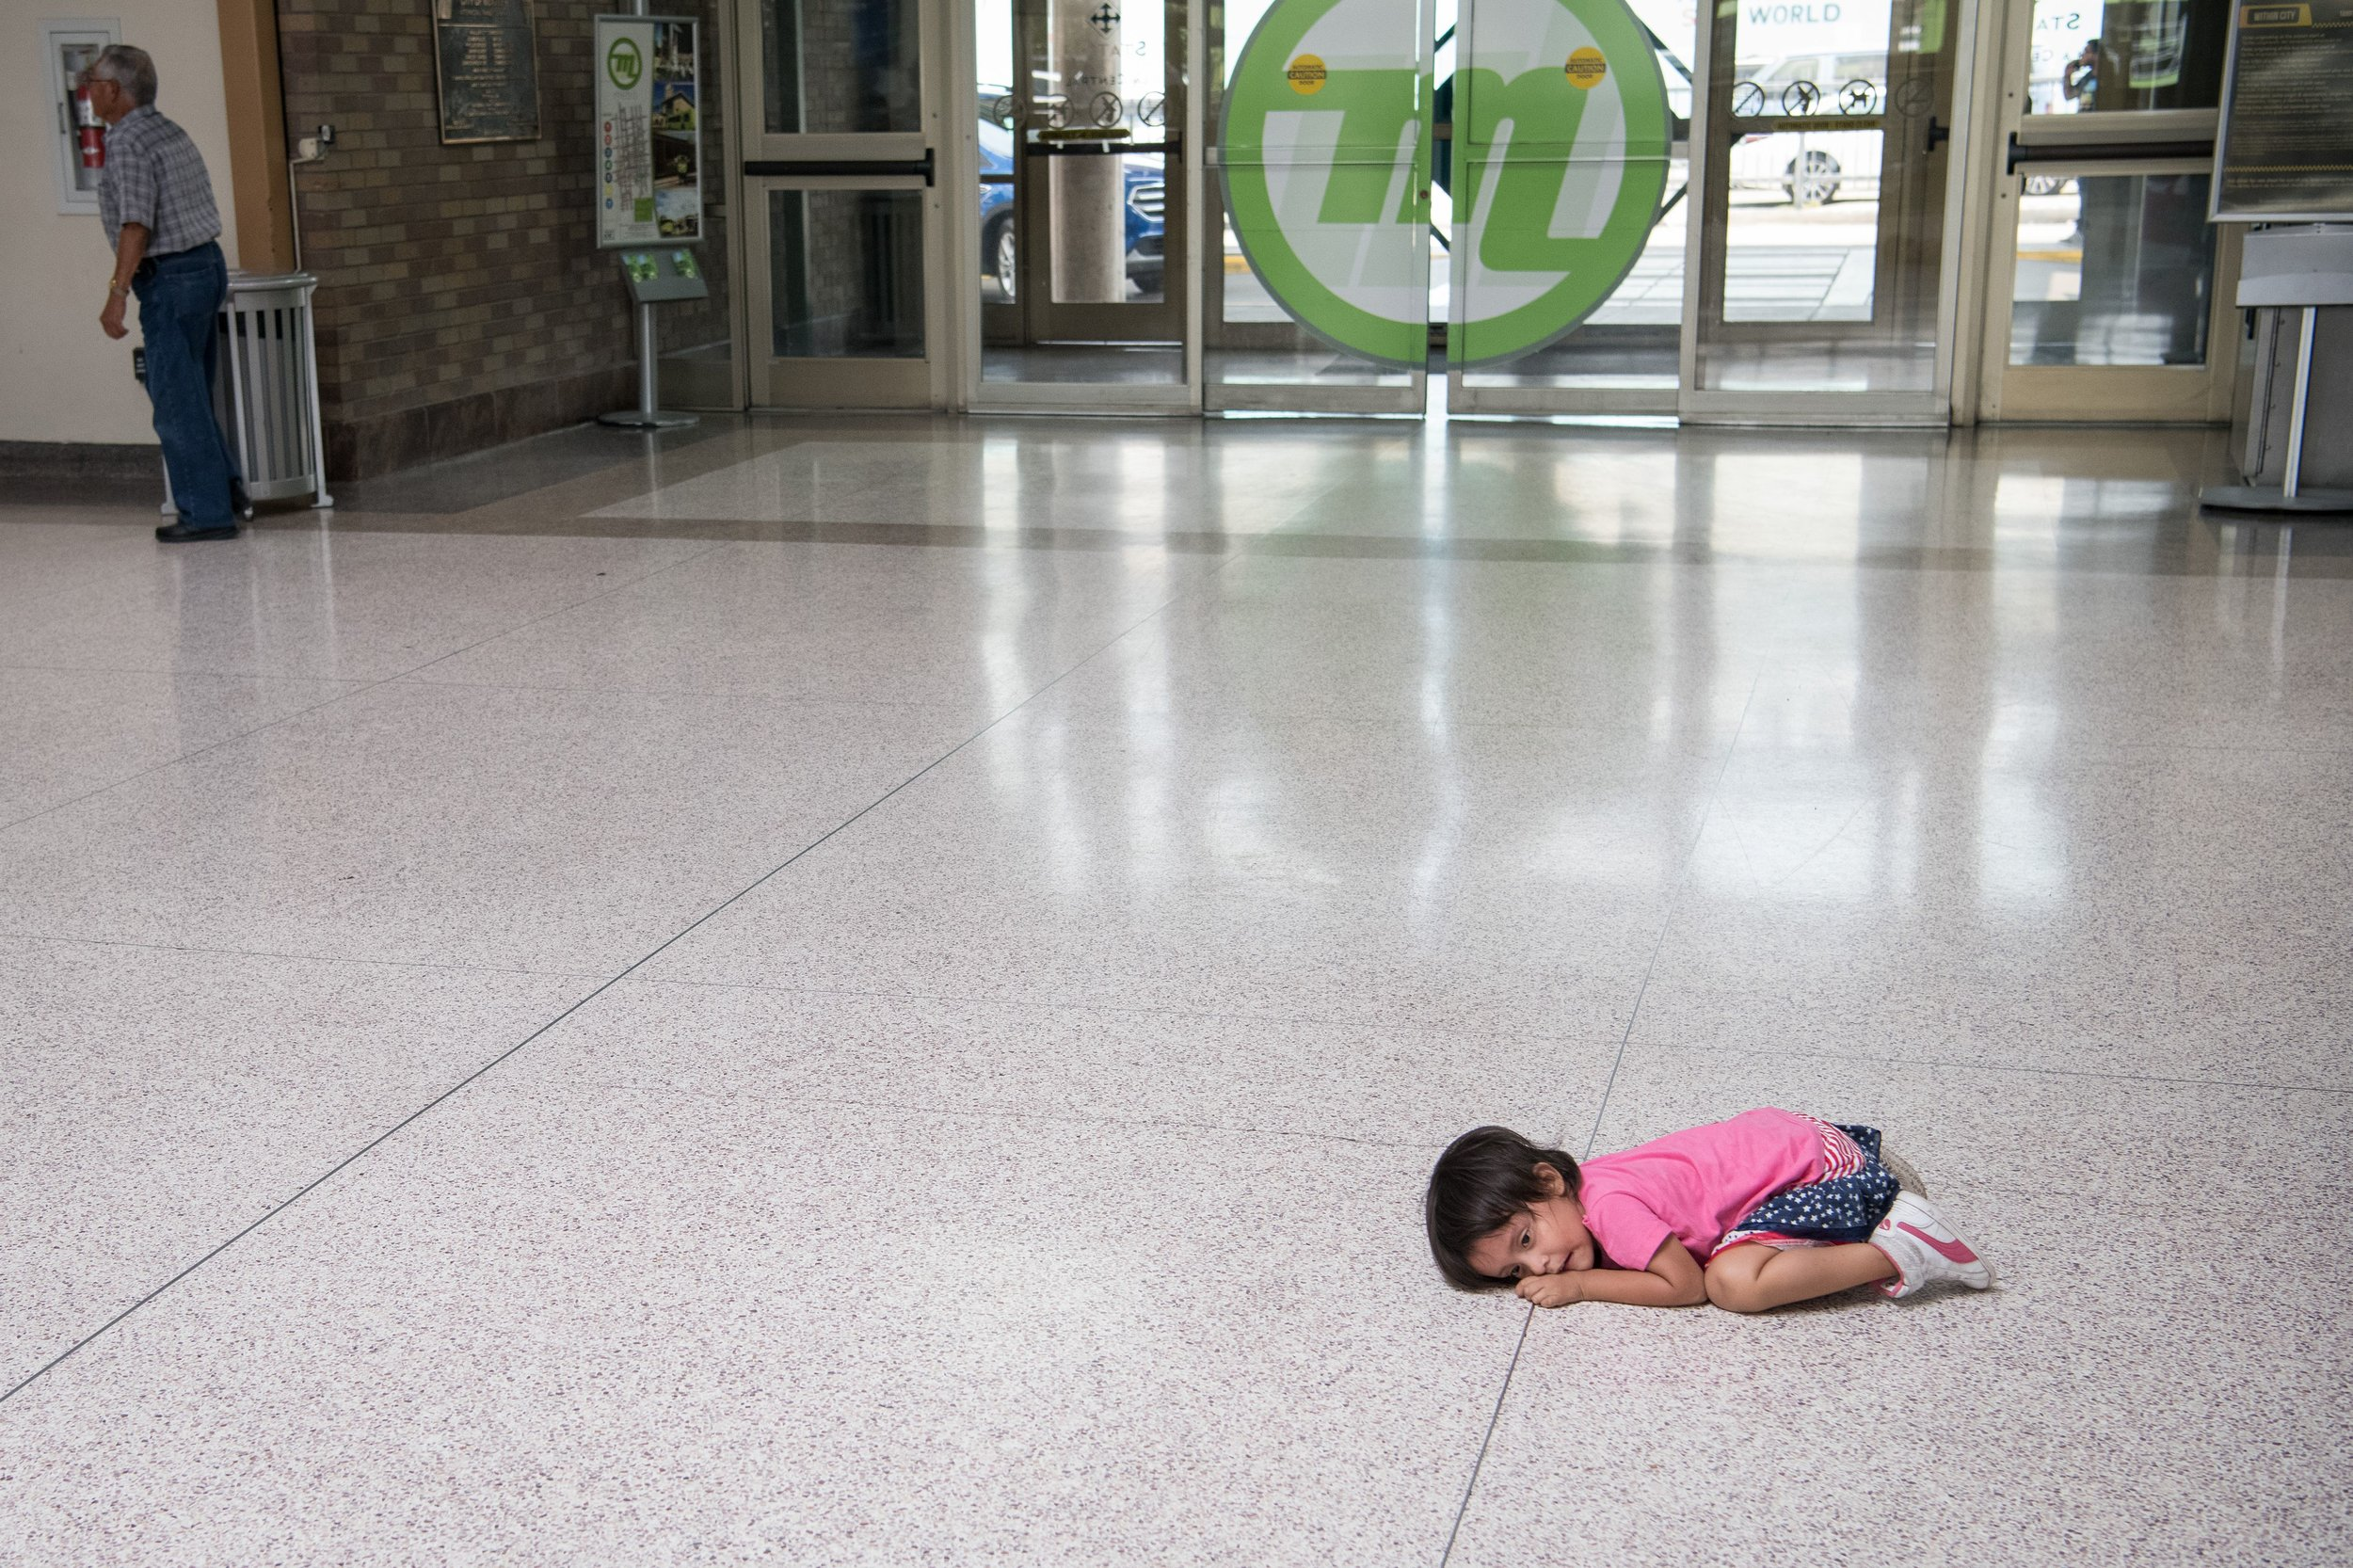 A young migrant girl sits on the floor as her father, recently released from federal detention with other Central American asylum seekers, gets a bus ticket at a bus depot on June 11, 2019, in McAllen, Texas. (Photo by LOREN ELLIOTT/AFP/Getty Images.)